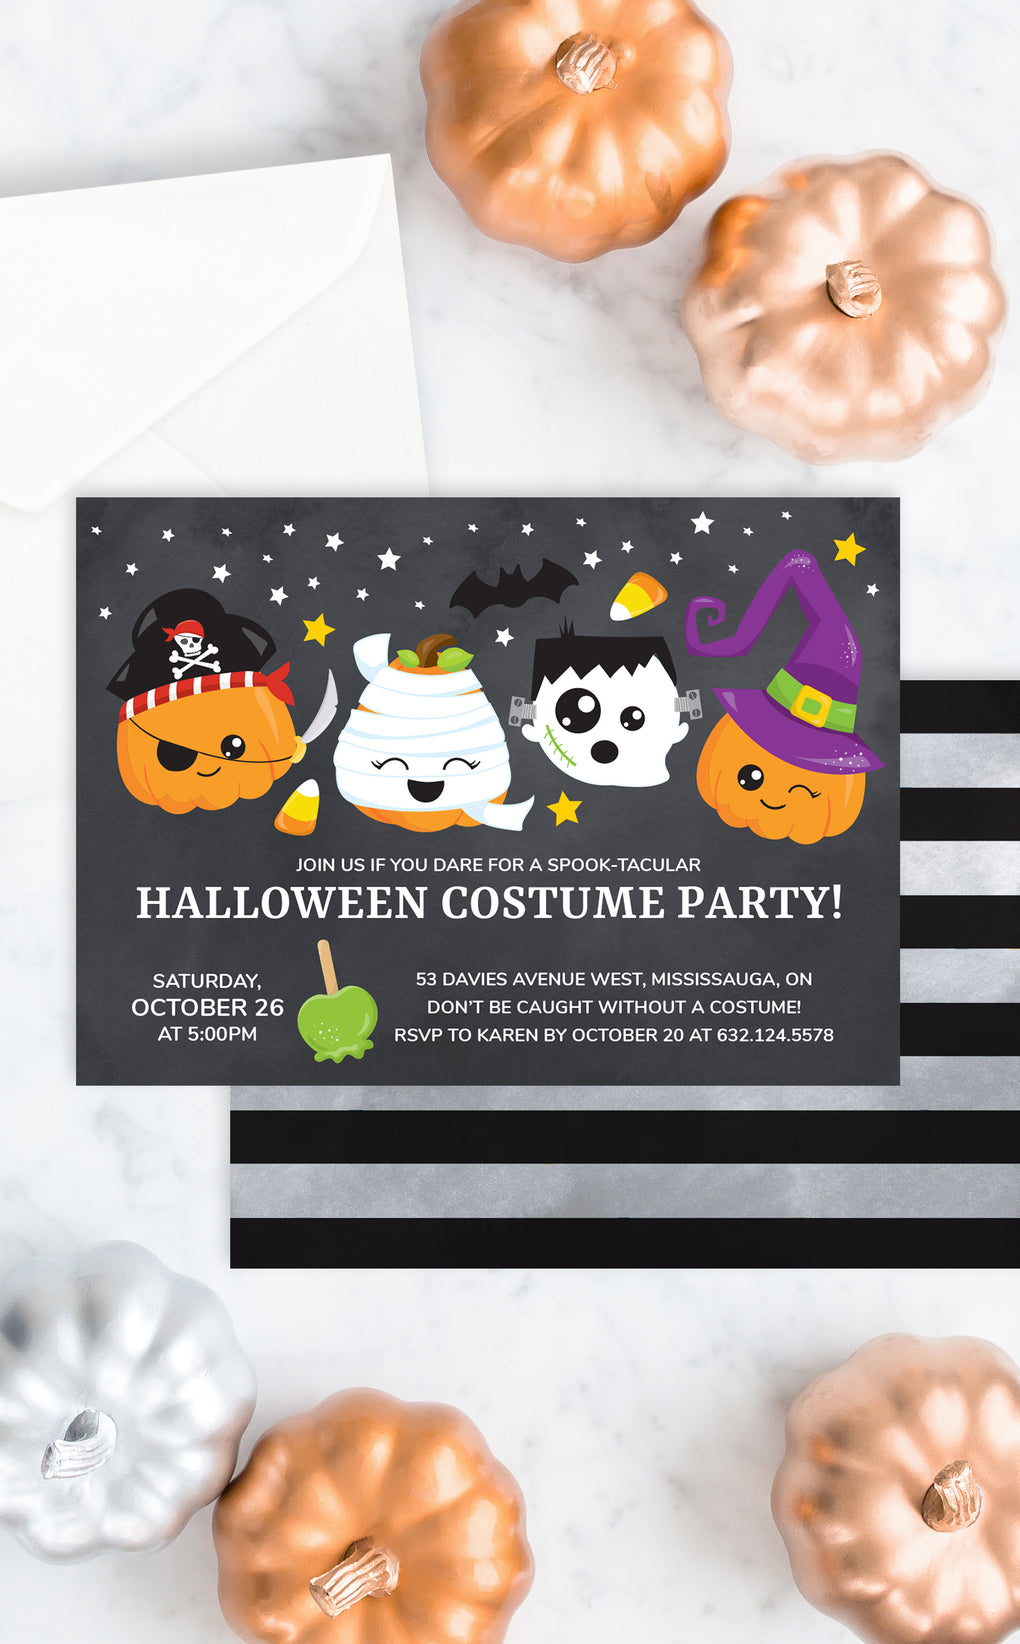 Halloween costume party invitation for kids with pumpkins